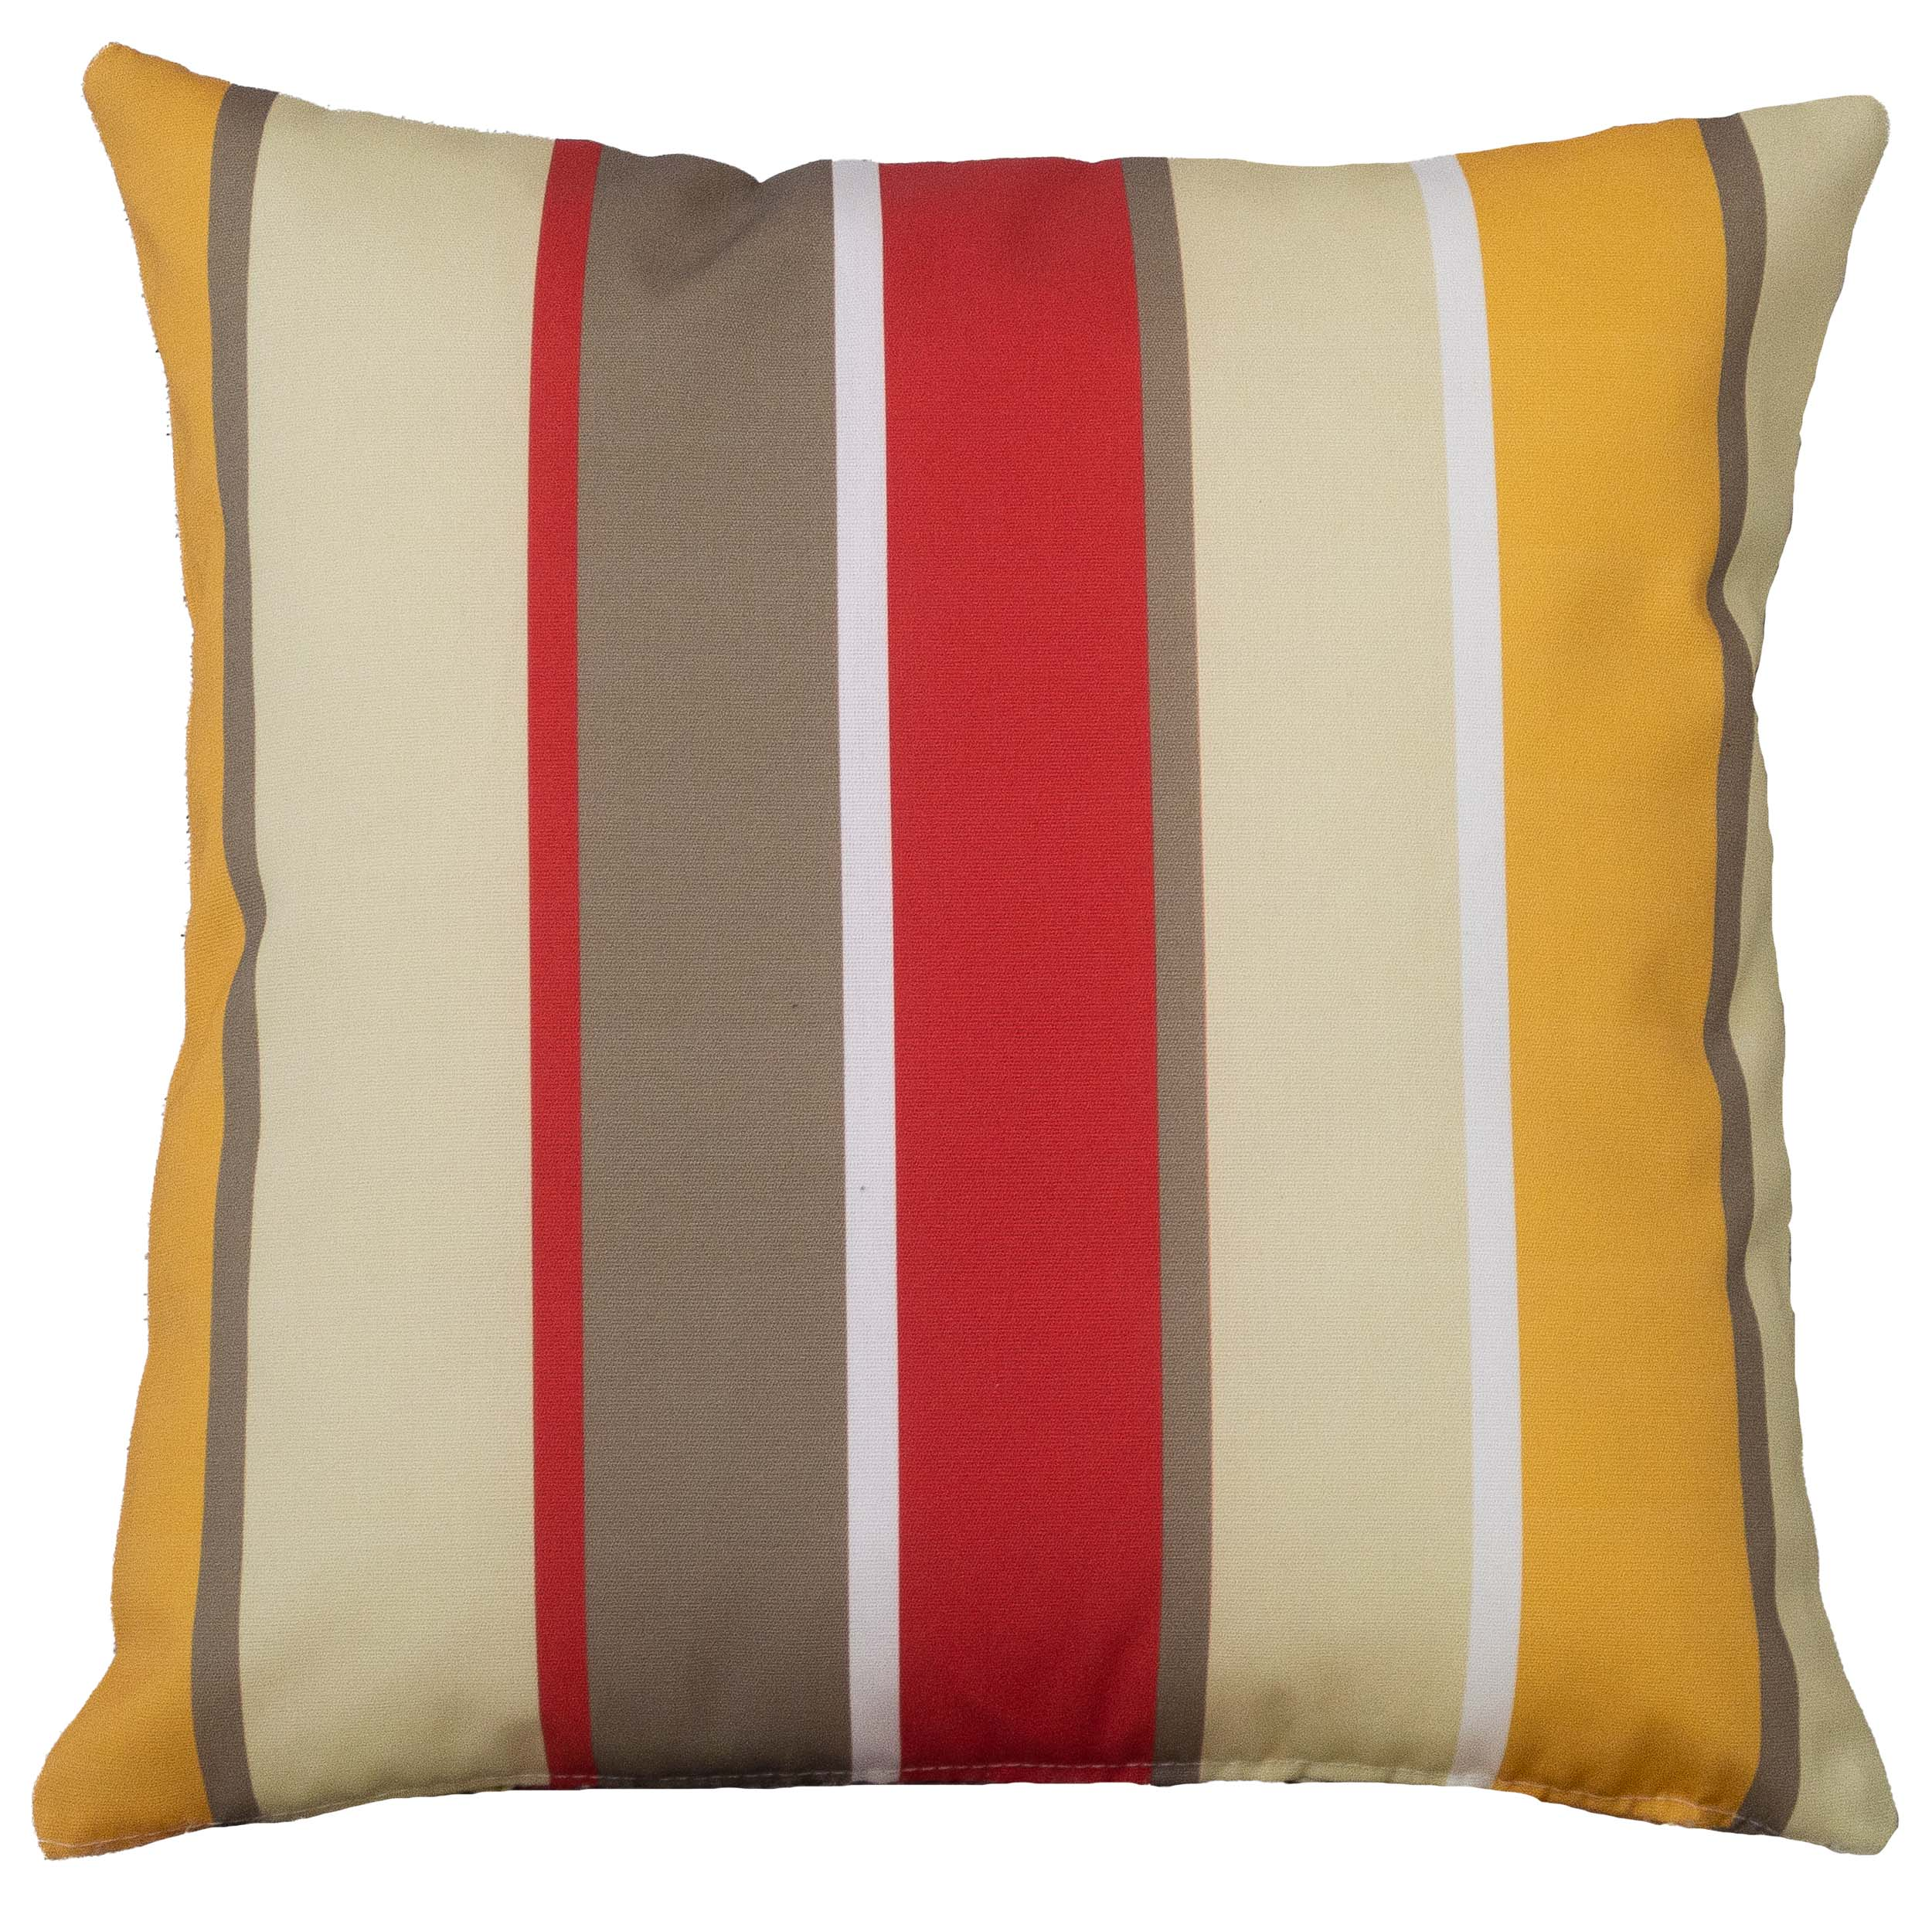 Striped Outdoor Cushion in Red and Sand